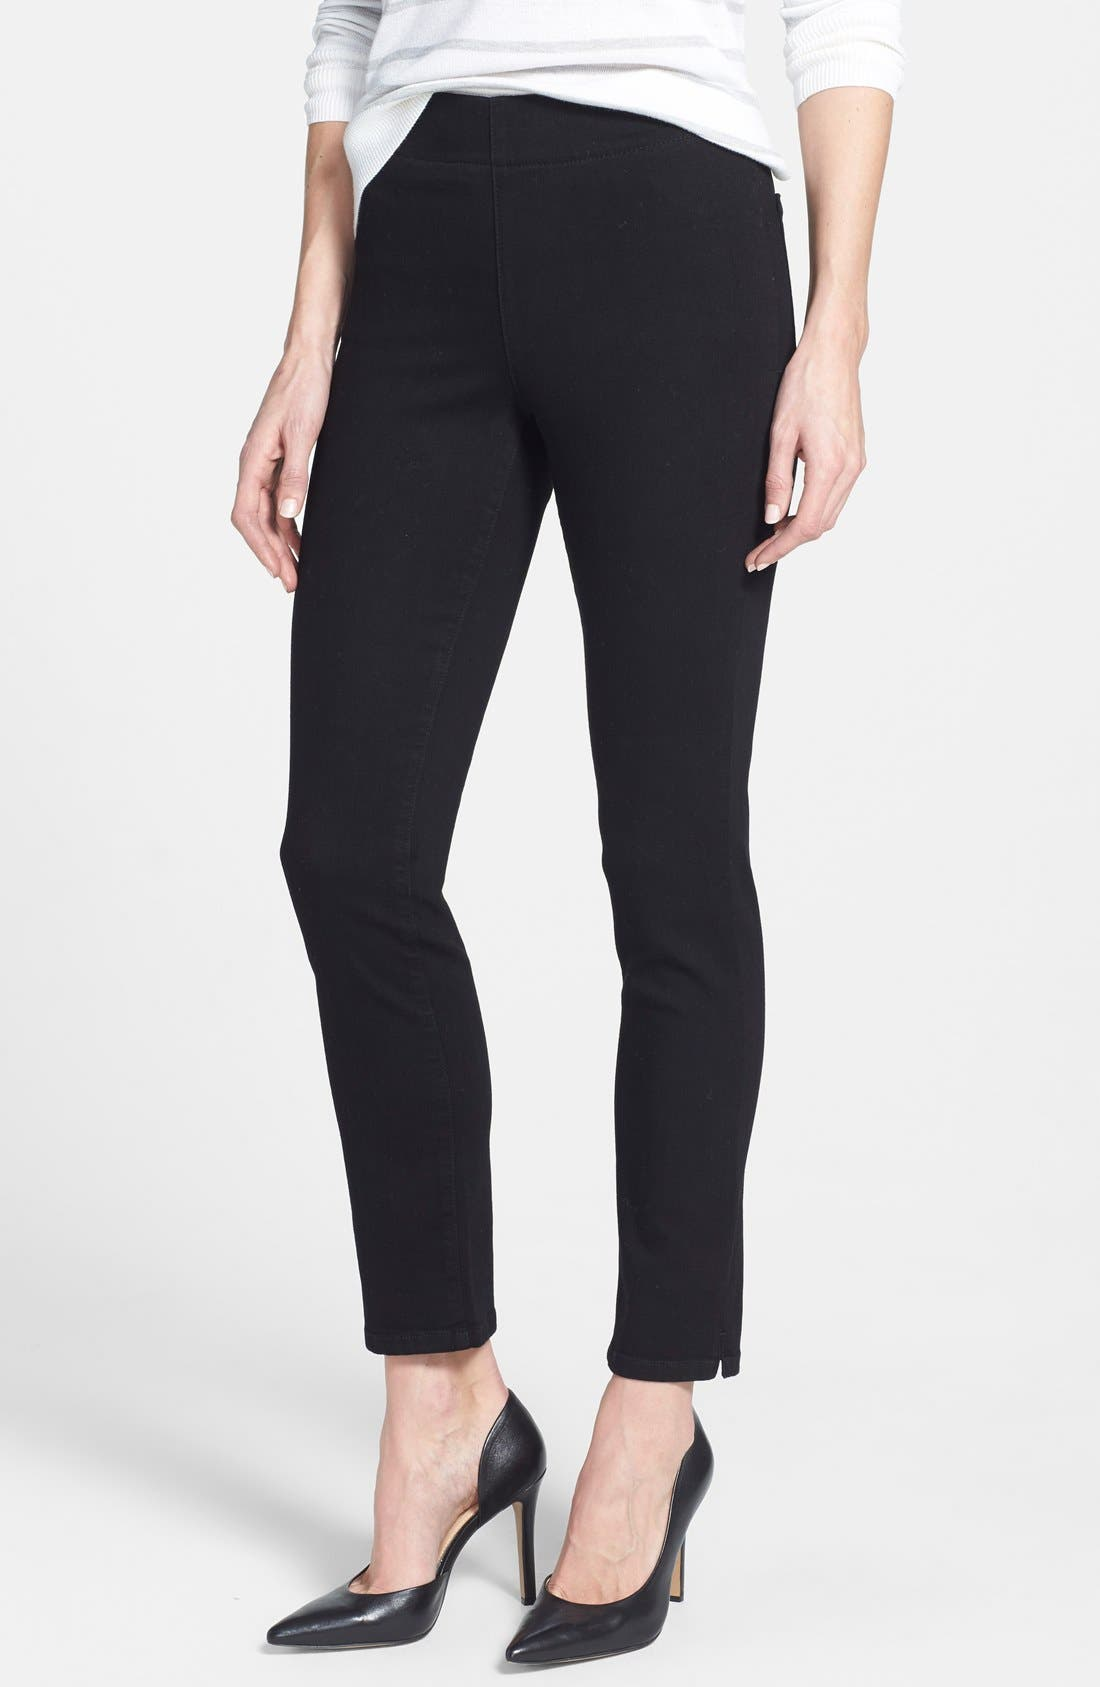 Alternate Image 1 Selected - NYDJ Alina Stretch Ankle Jeans (Regular & Petite)